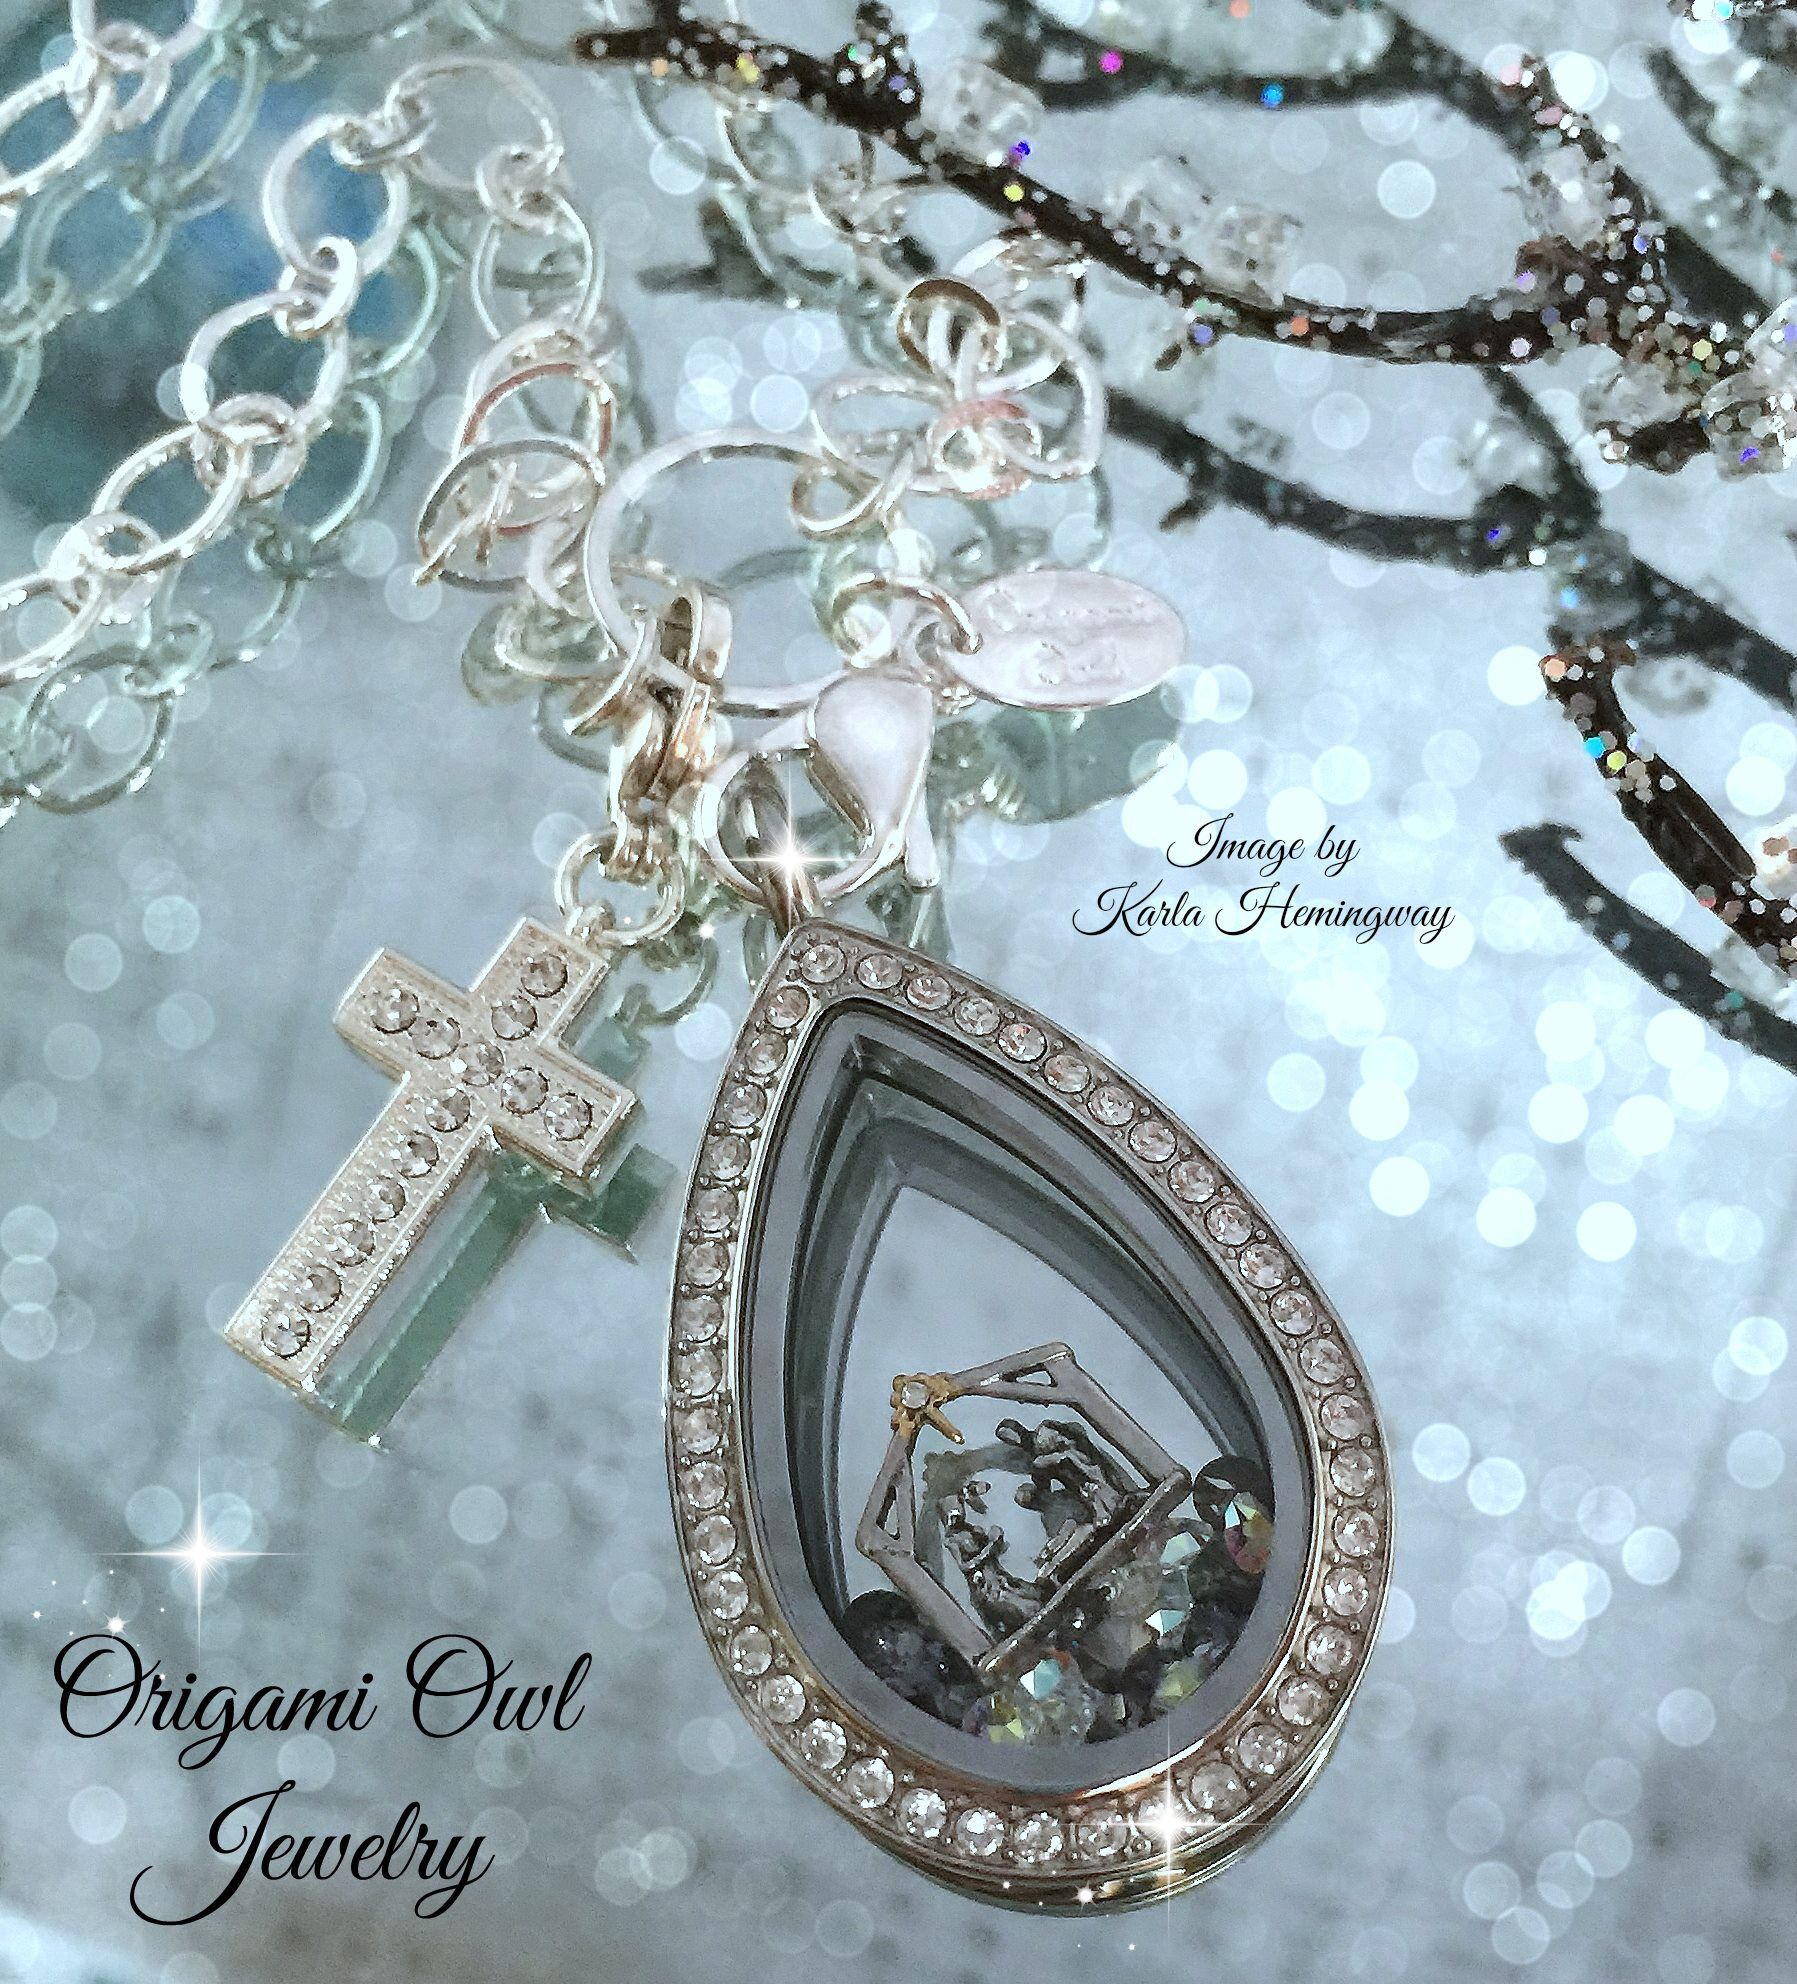 me message lockets owl pinterest exclusive jewelry images march free best locket origami may teardrop on hostess from jmselliott